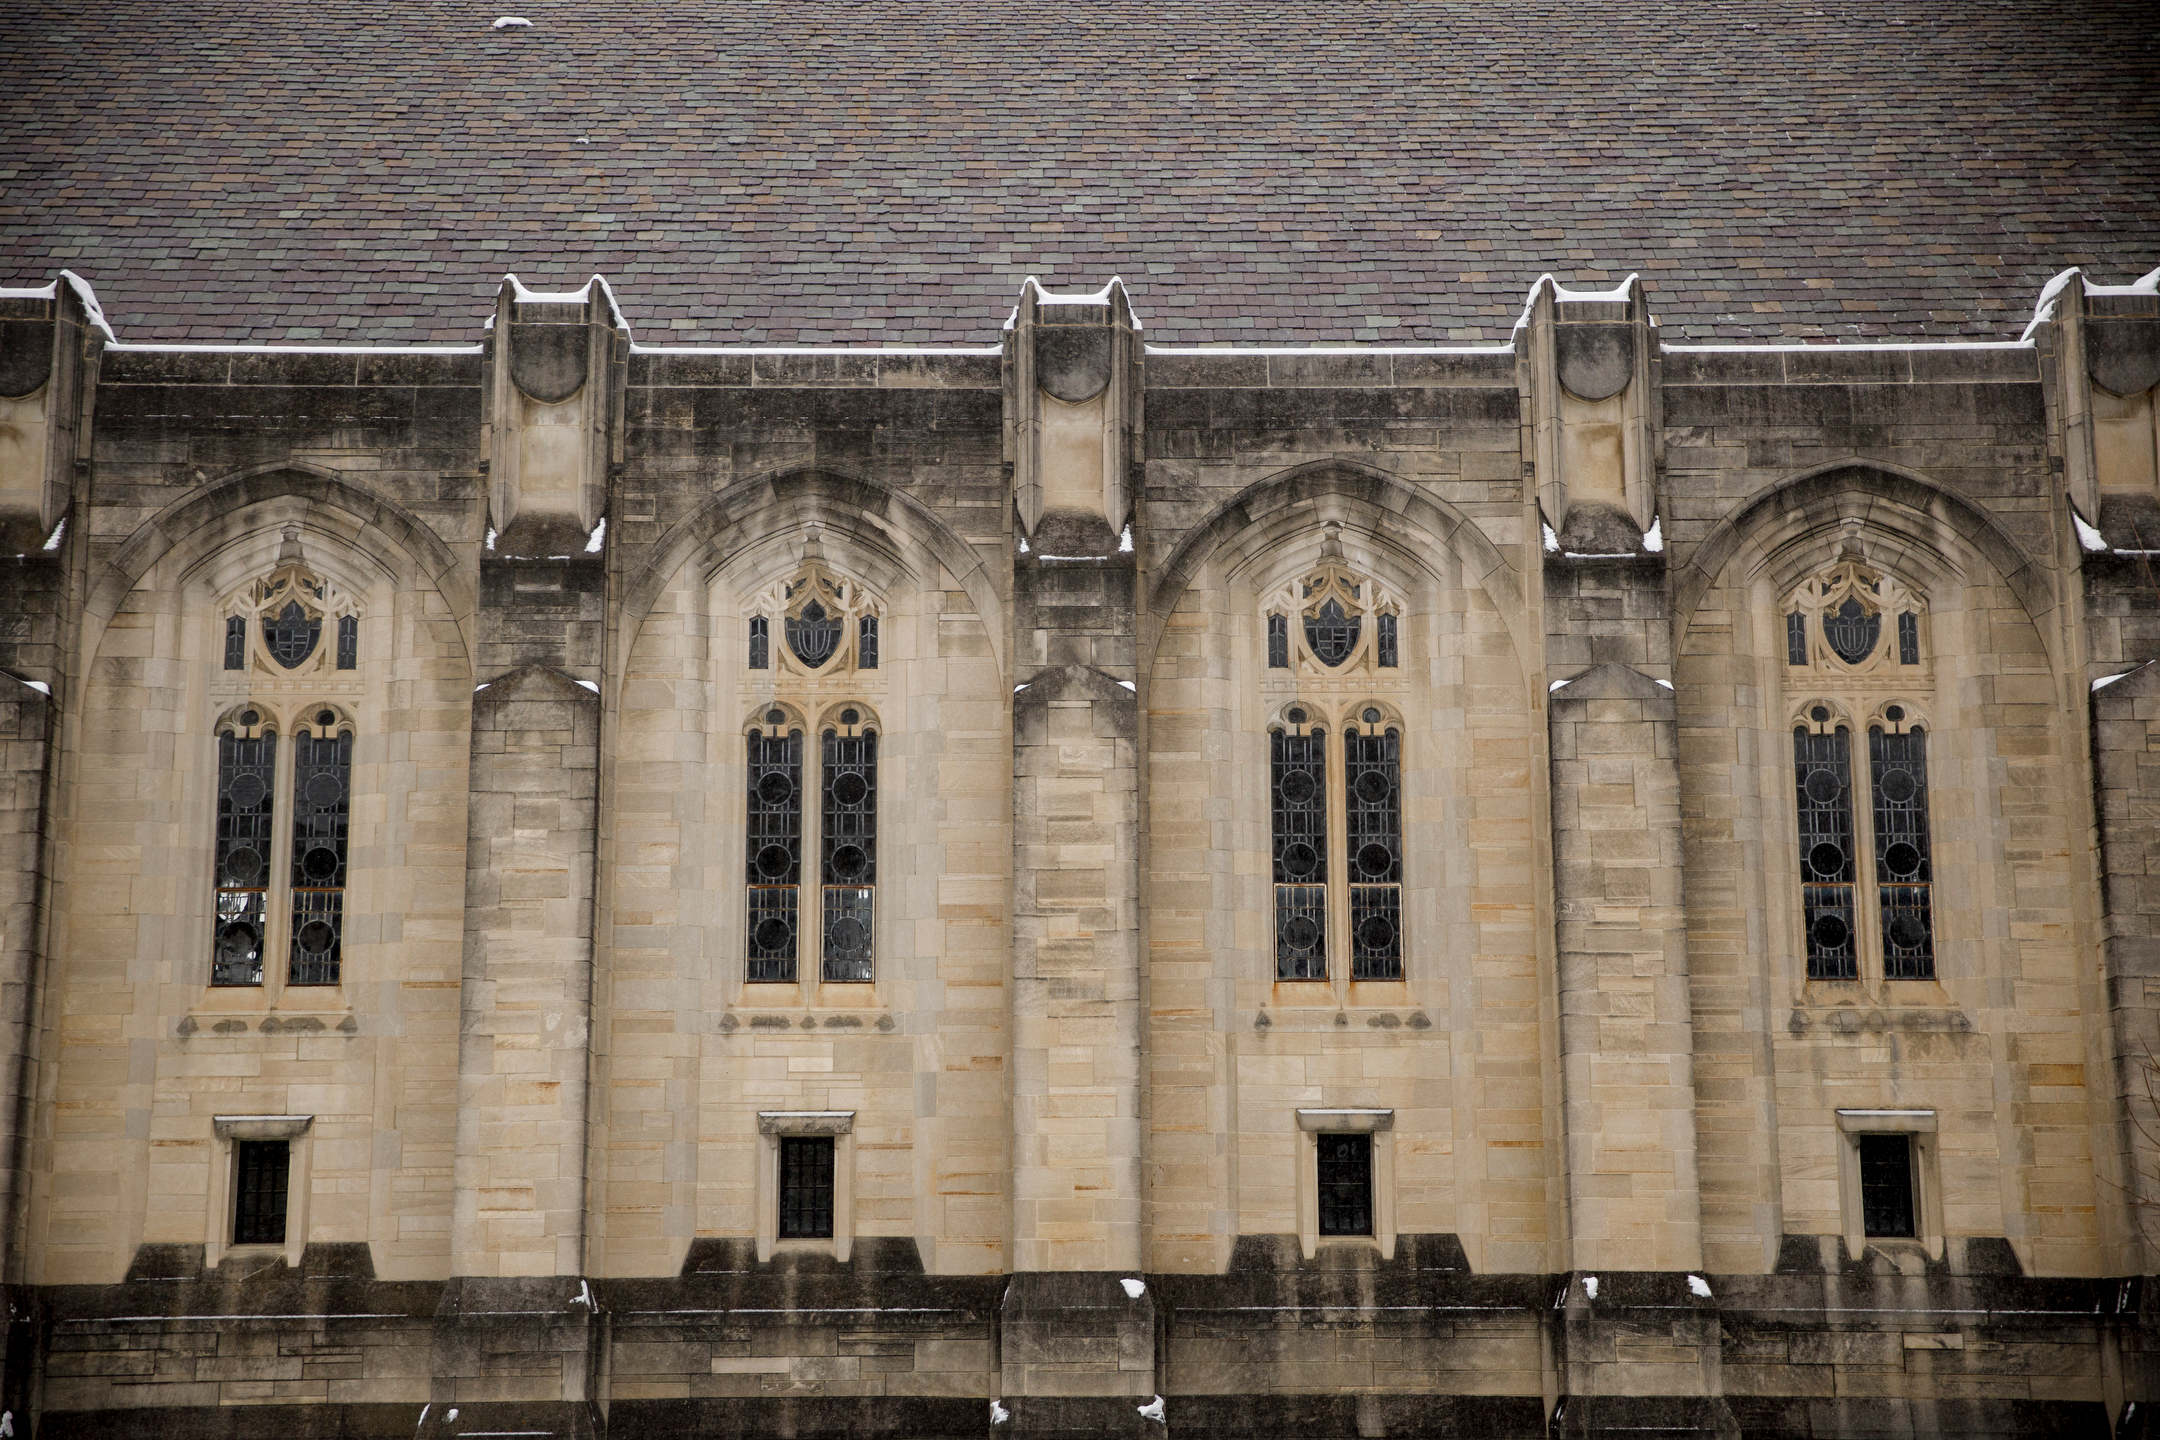 Snow clings to limestone features on the side of the Indiana Memorial Union on a winter day at Indiana University Bloomington on Wednesday, Feb. 10, 2021.